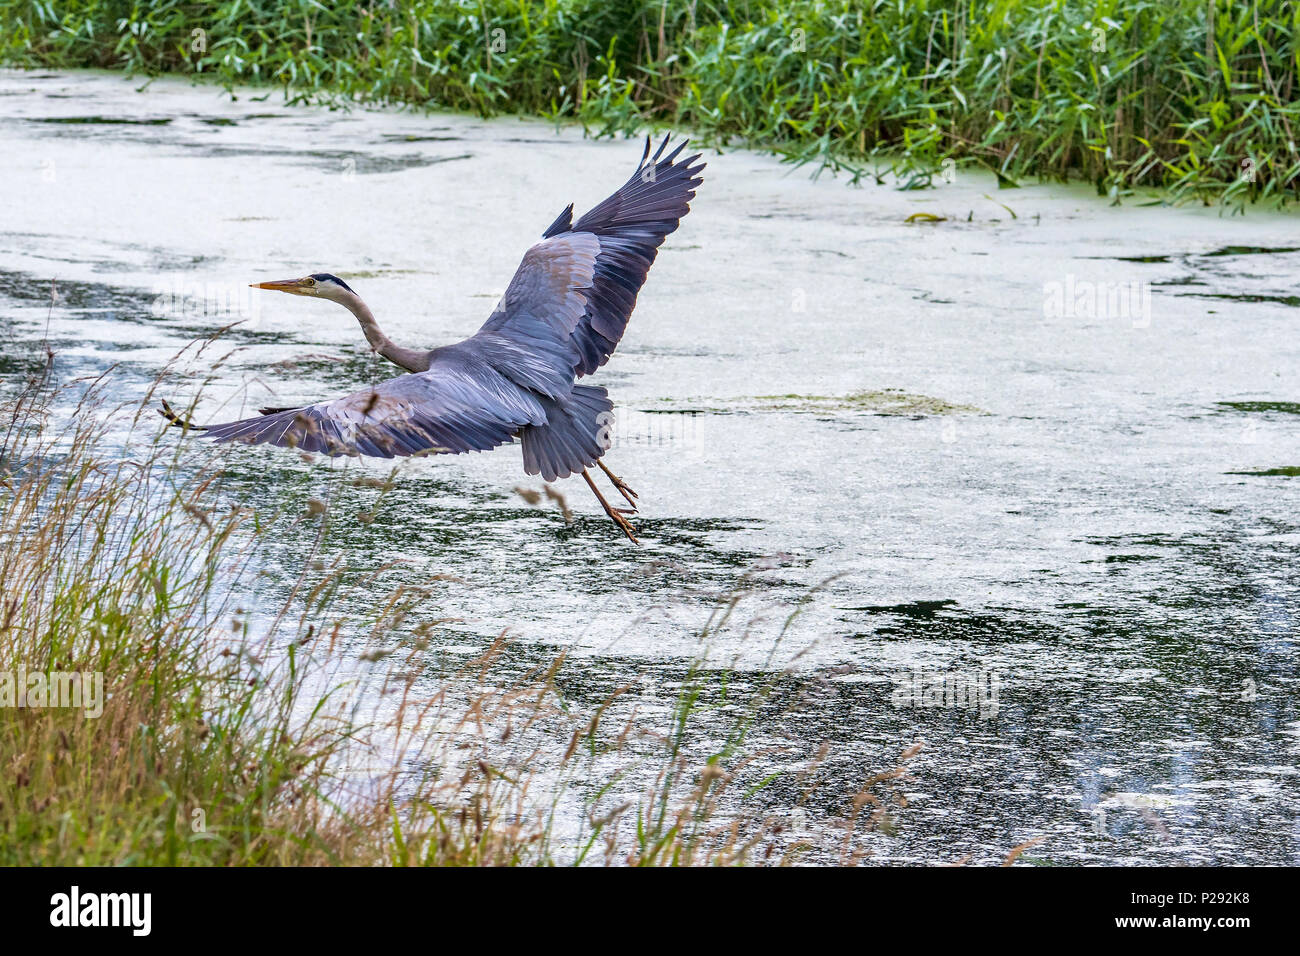 A Heron by a canal. The herons are the long-legged freshwater and coastal birds in the family Ardeidae - Stock Image